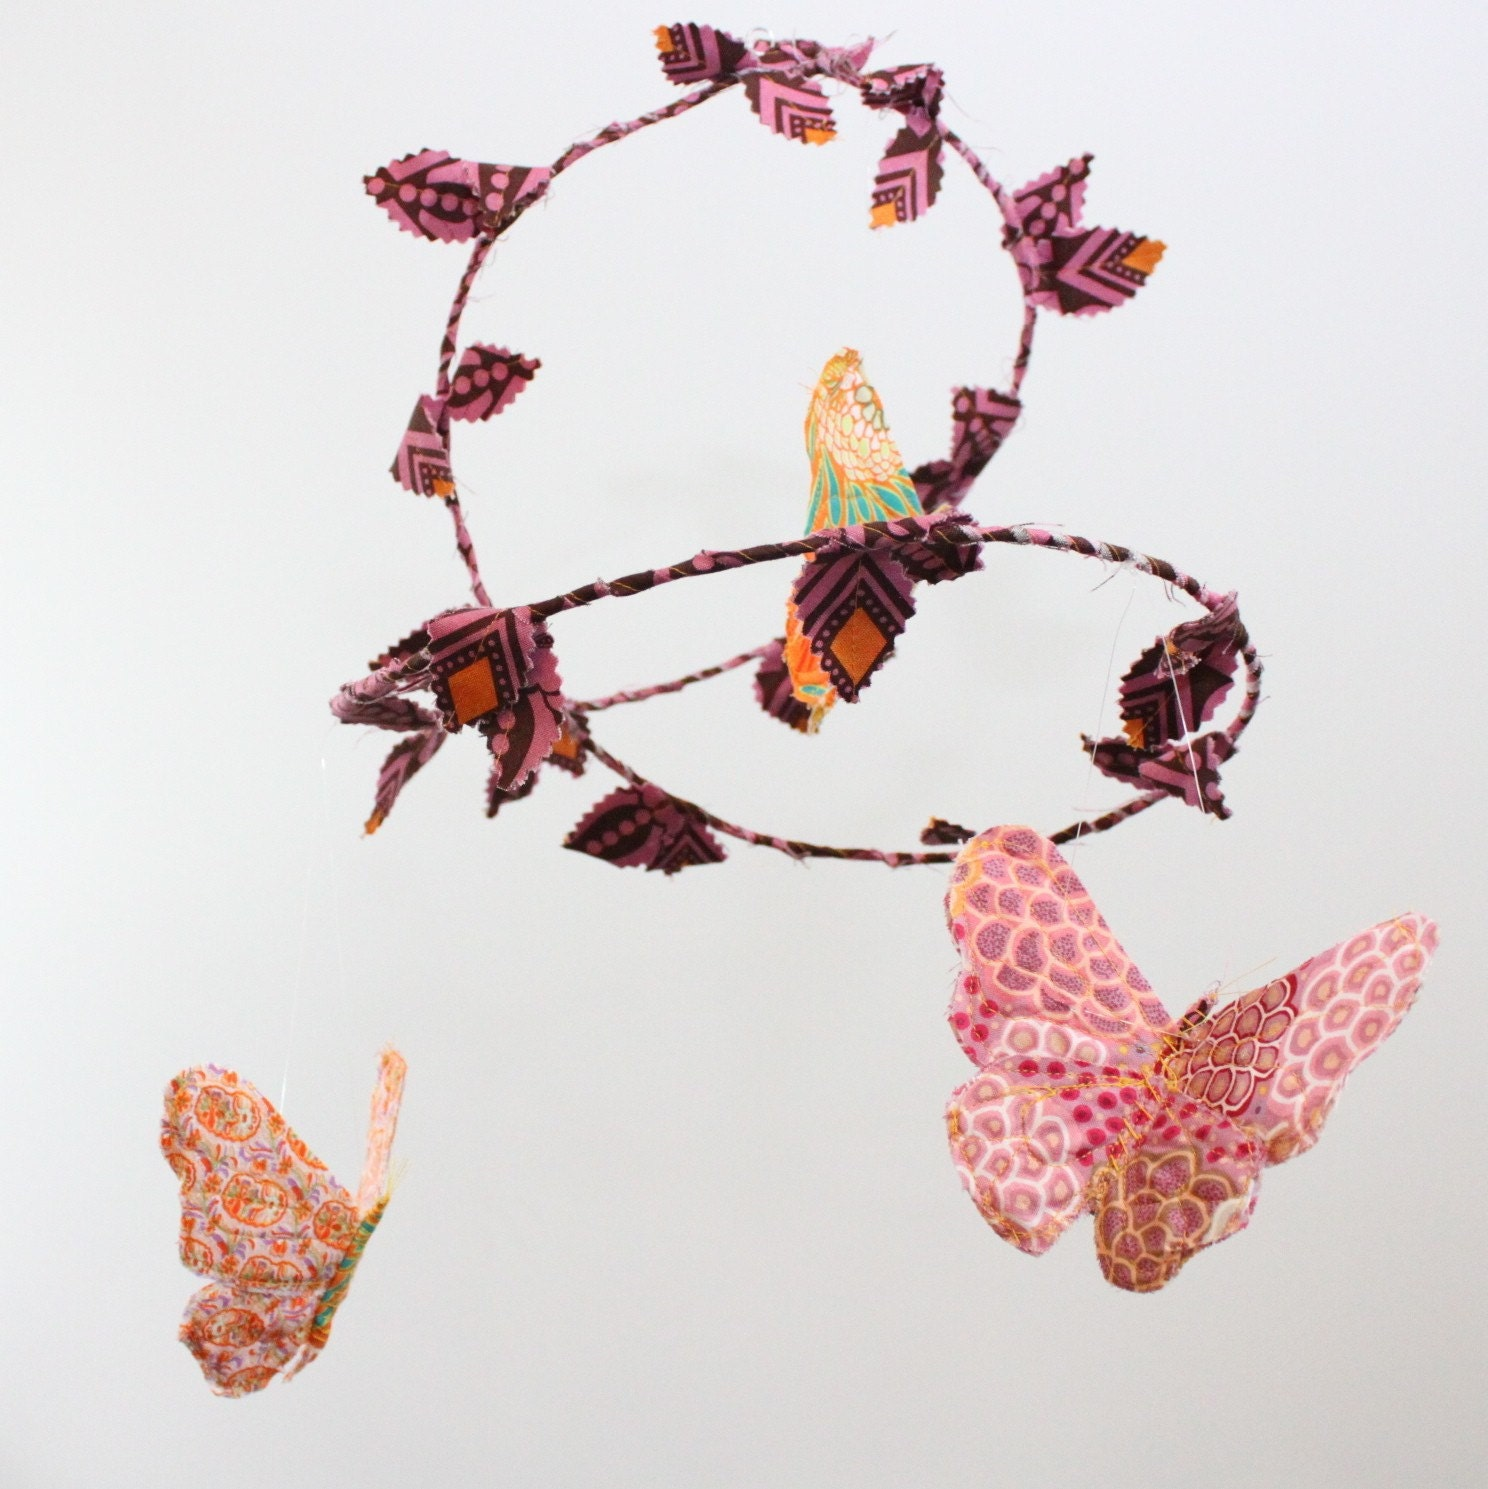 Butterfly ballet - handmade fabric mobile in peach, clementine orange, sunny yellow, rose, magenta, hot pink, brown, and white